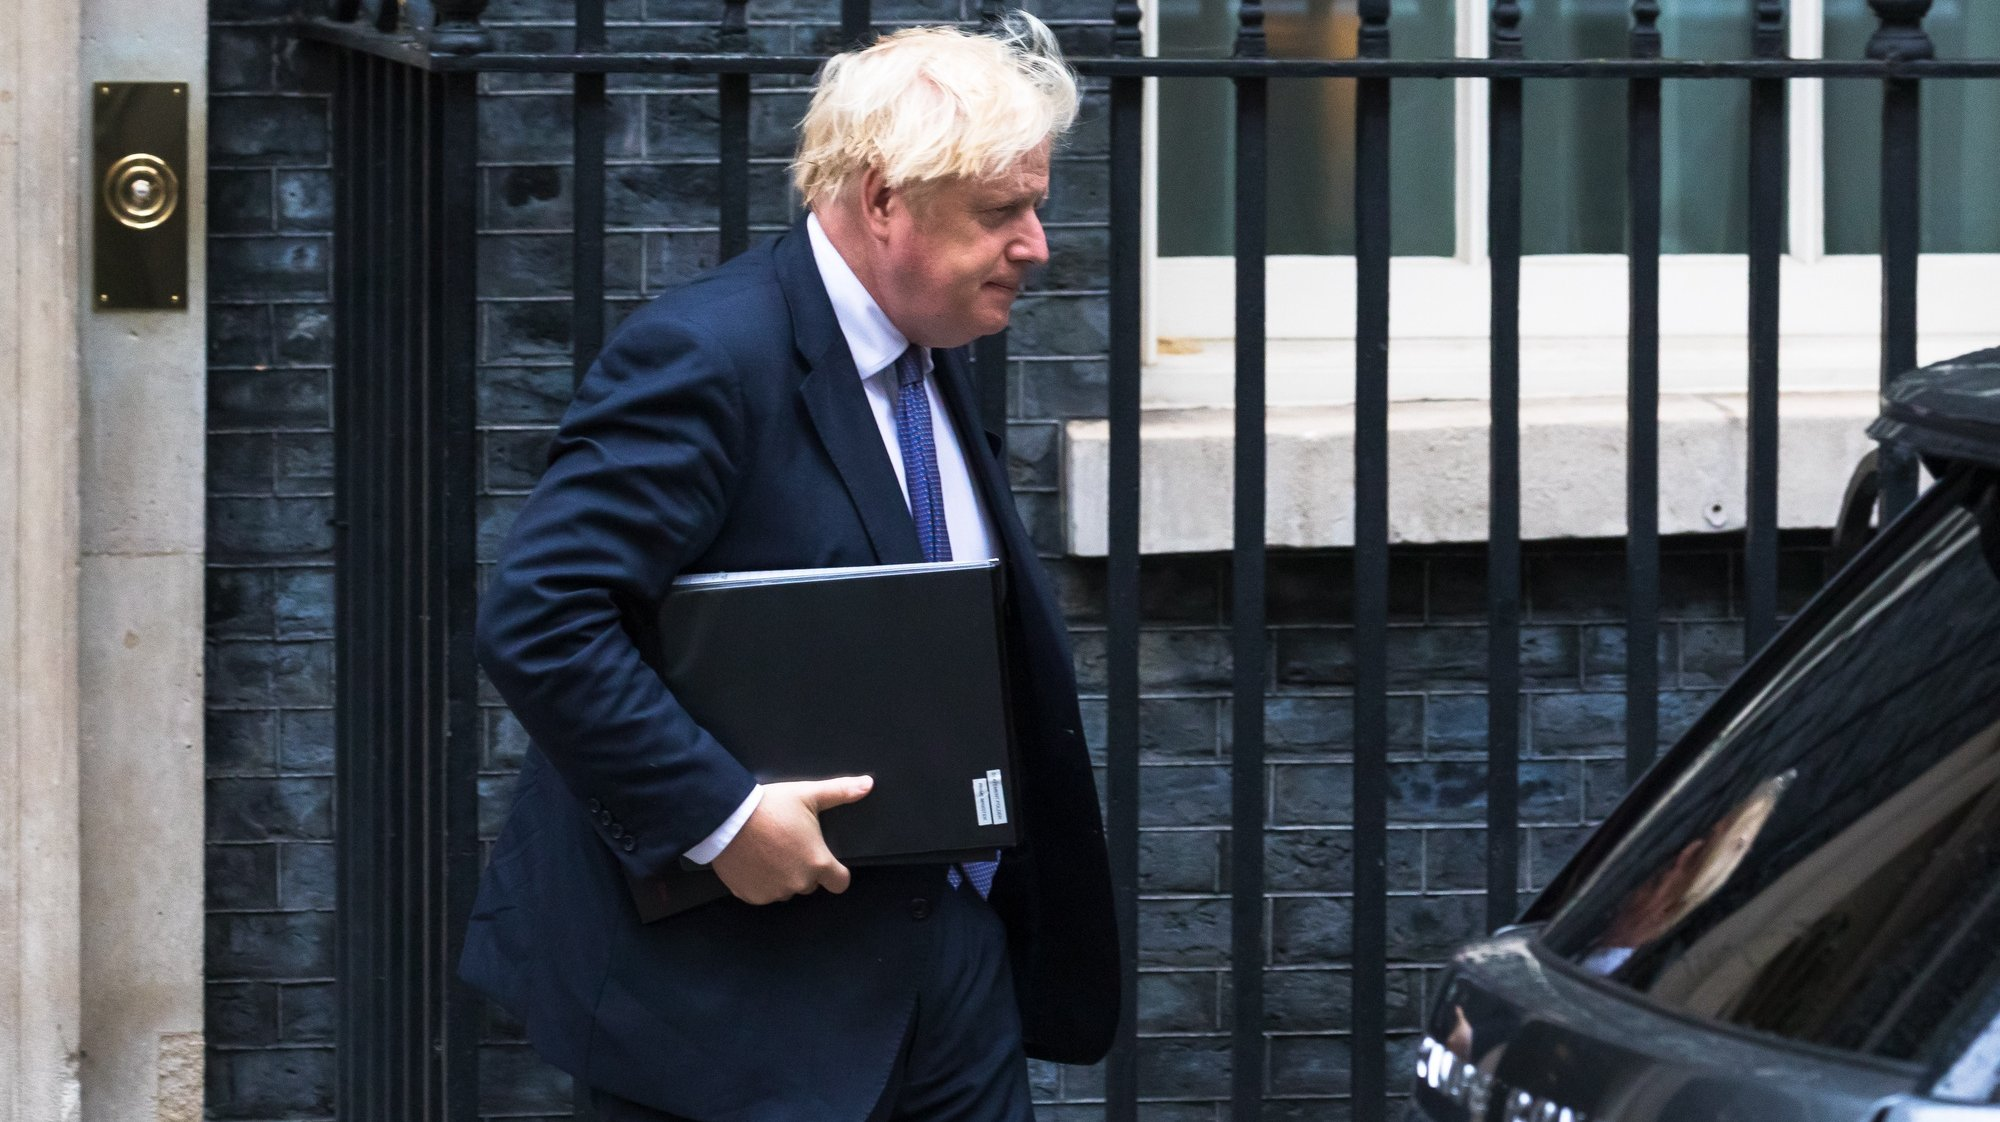 epa09418766 British Prime Minister Boris Johnson departs 10 Downing Street in London, Britain, 18 August 2021. Prime Minister Boris Johnson has recalled parliament from recess to discuss the ongoing situation in Afghanistan.  EPA/VICKIE FLORES